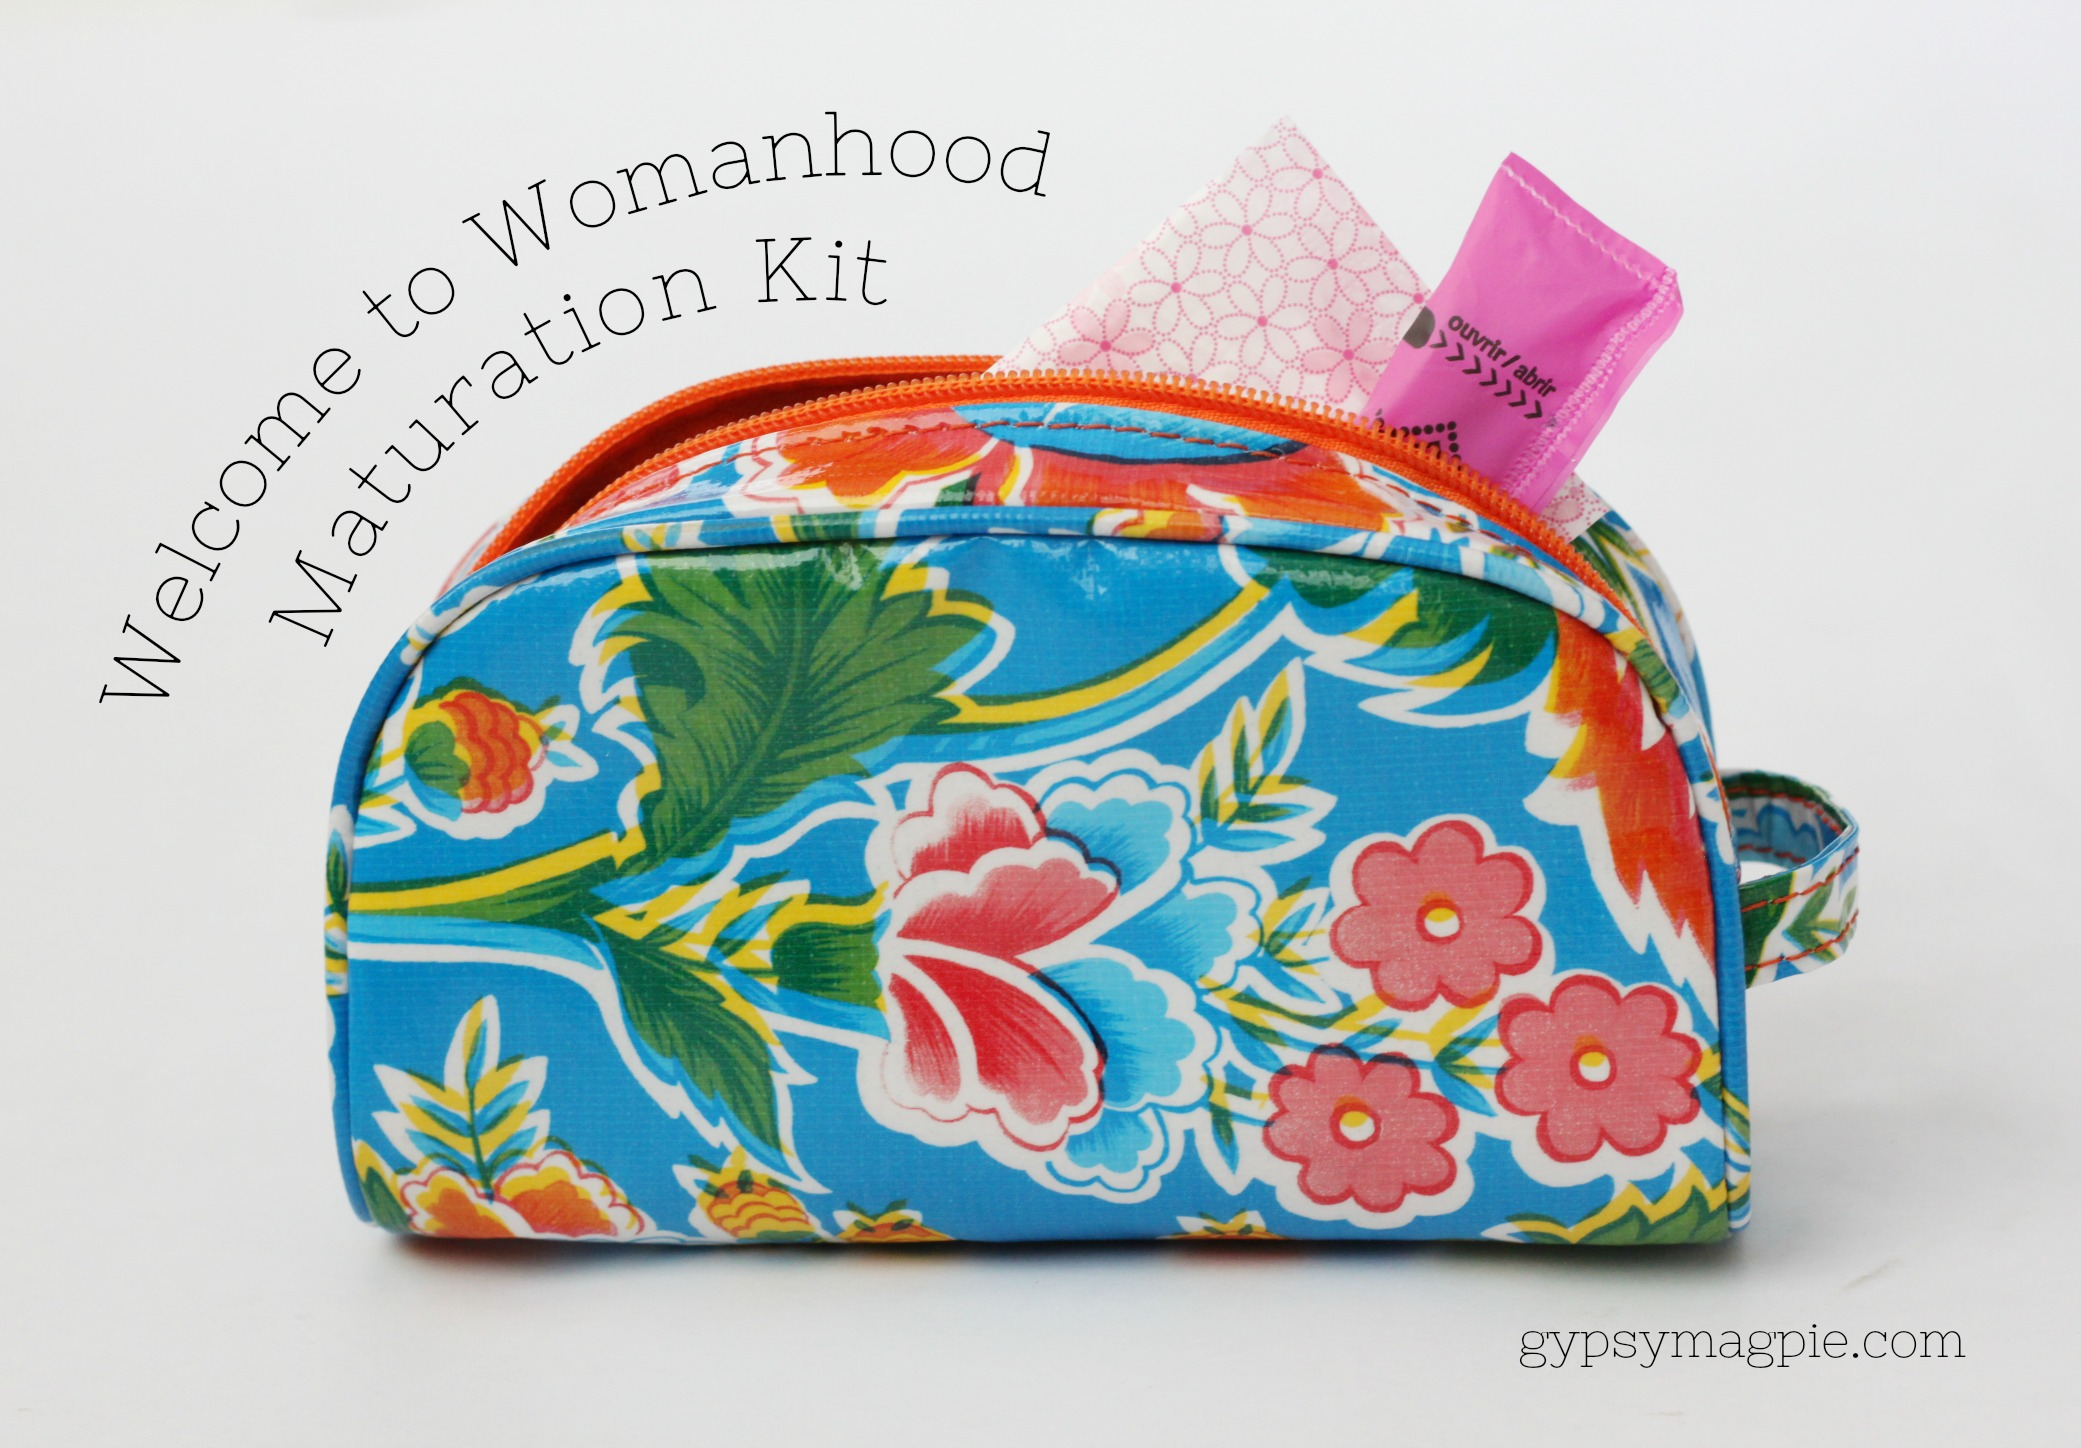 Welcome your daughter to womanhood with this simple kit and a long talk. It doesn't have to be scary or awkward, I promise!   Gypsy Magpie